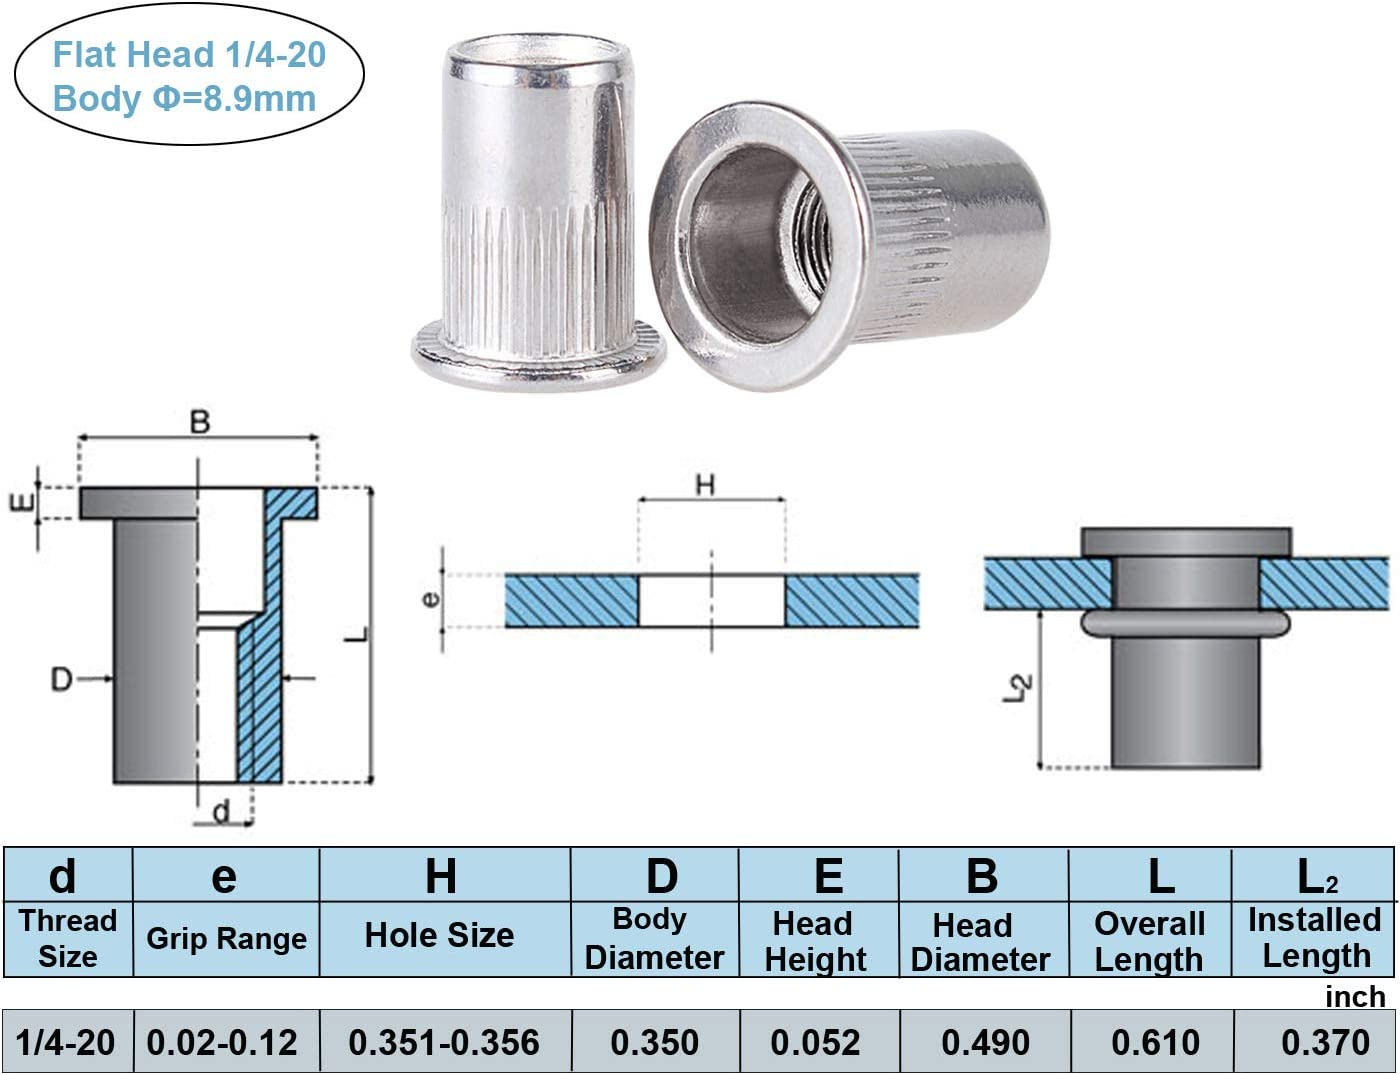 10-24 Stainless Steel Rivet Nuts Threaded Insert Nutsert Rivnuts 5 Sizes 8-32 1//4-20 3//8-16 5//16-18